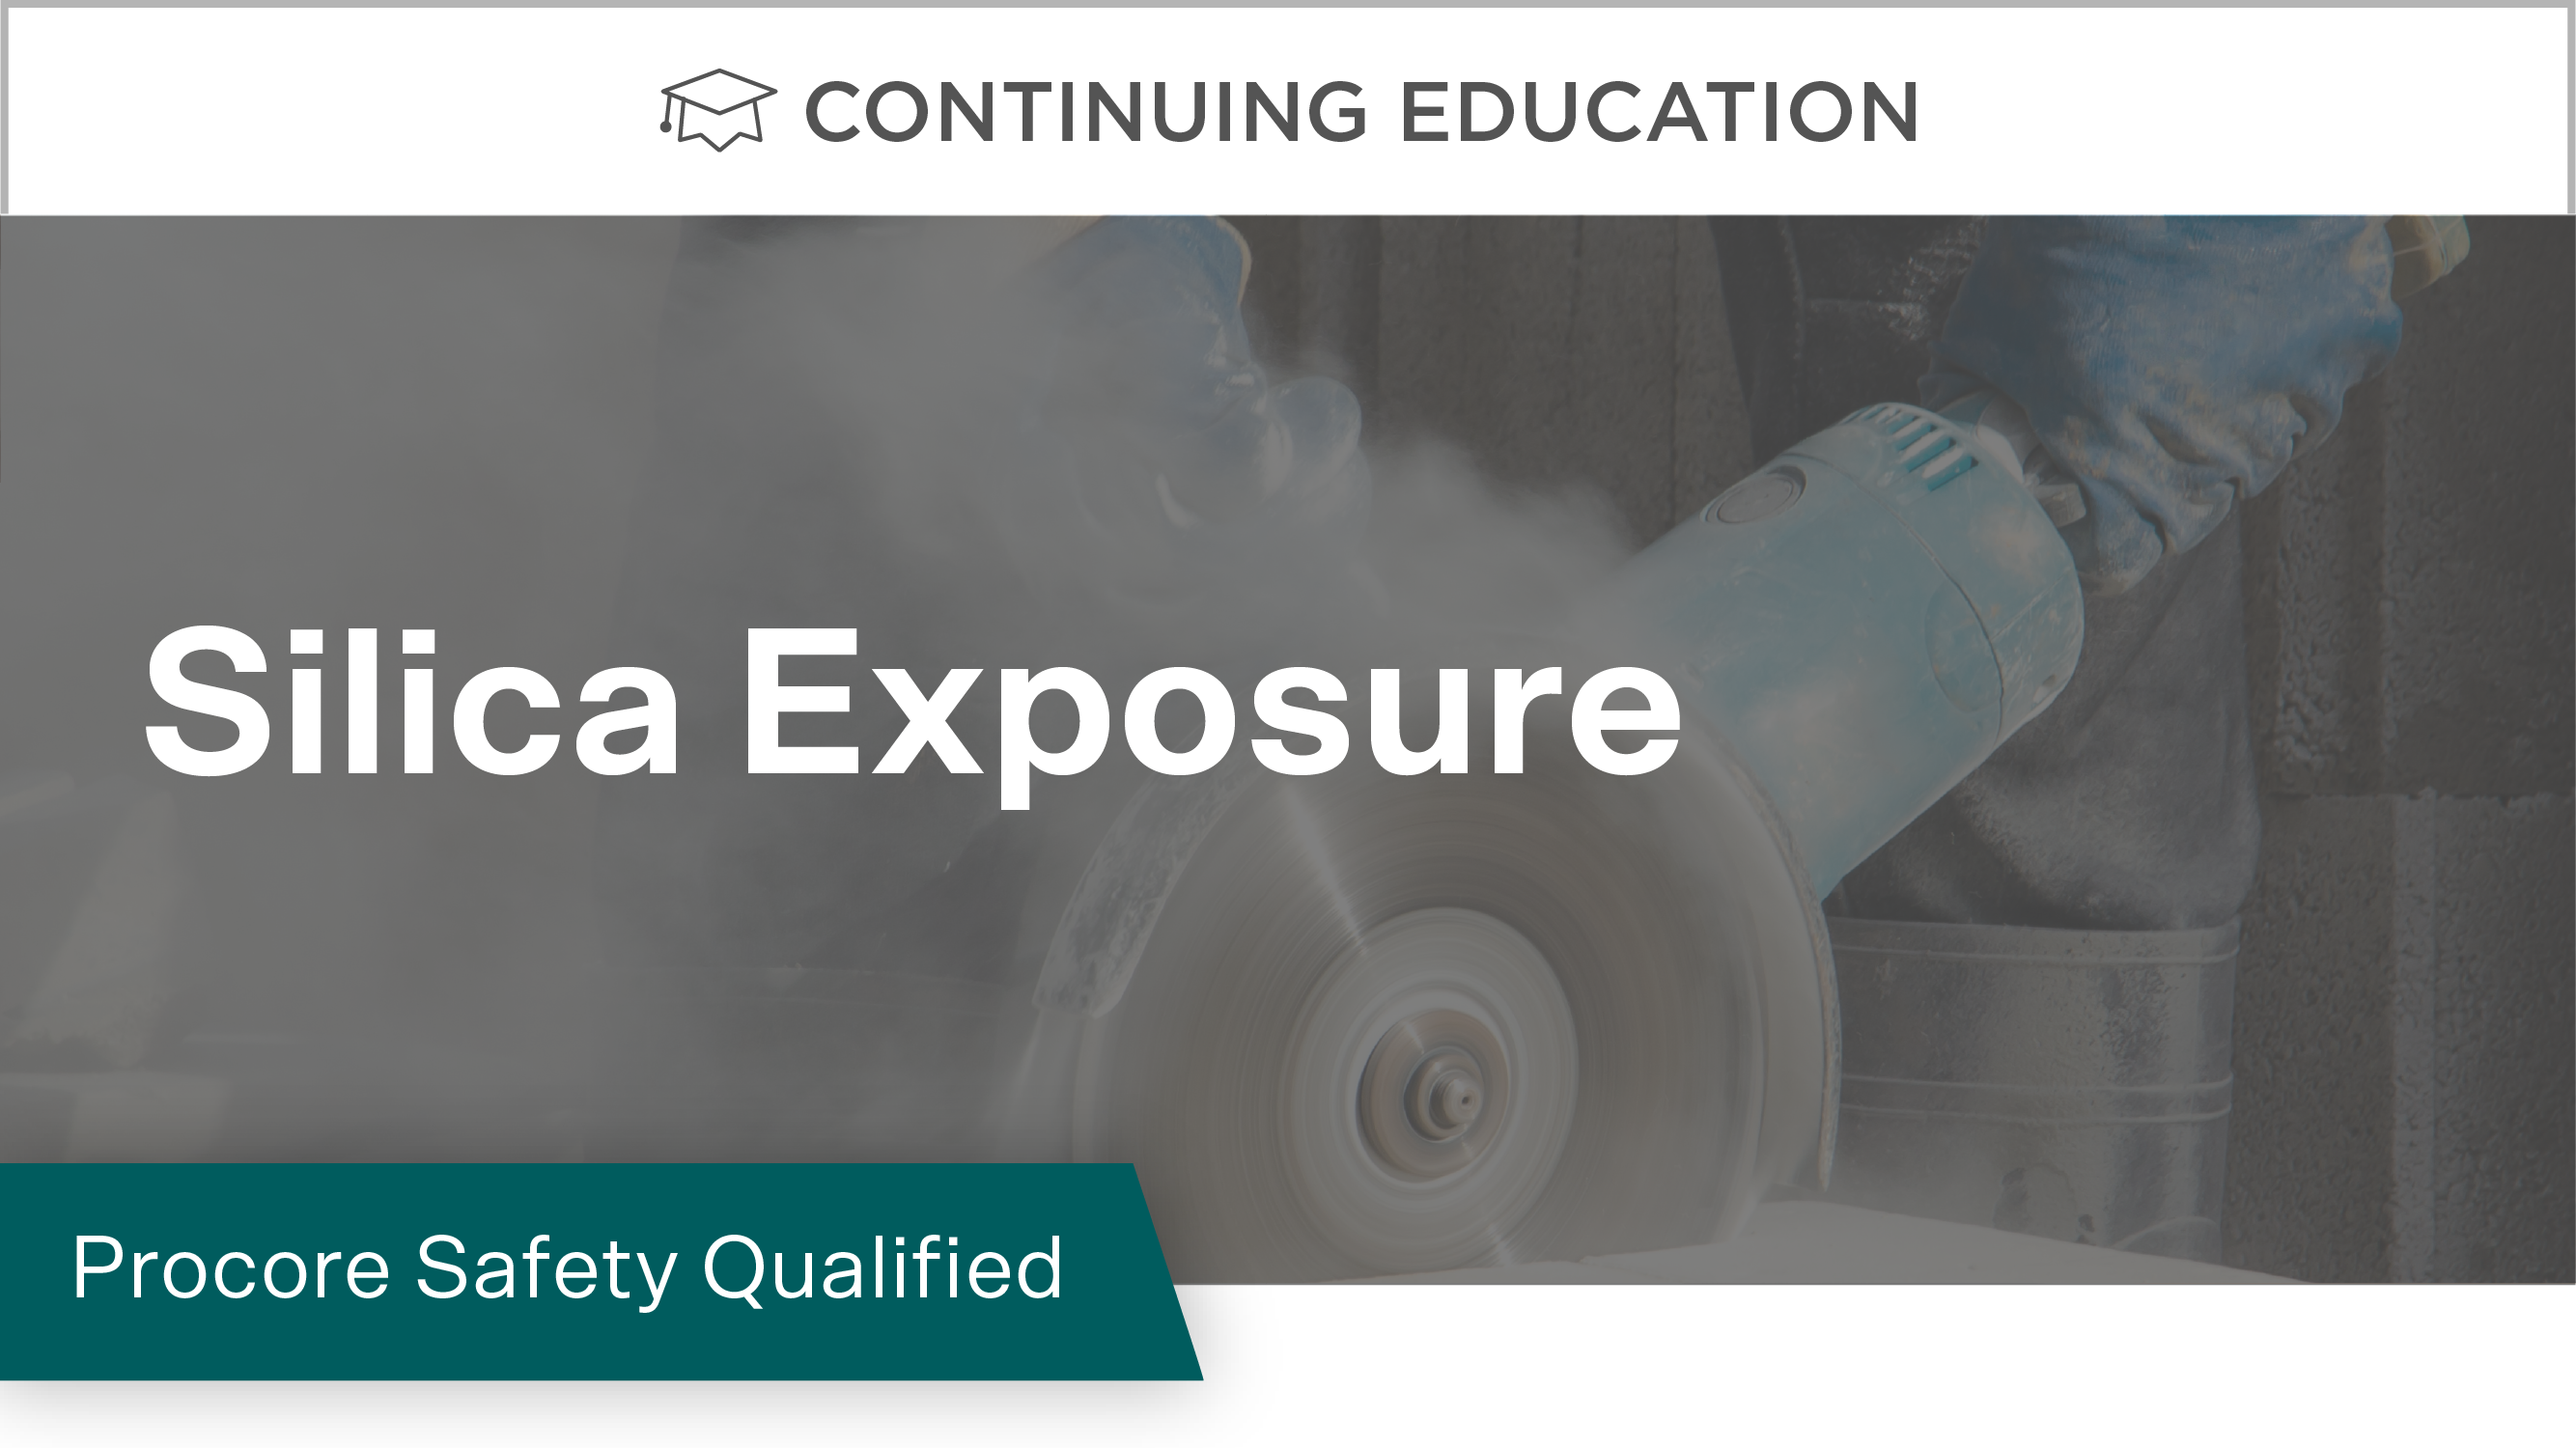 Procore Safety Qualified: Silica Exposure